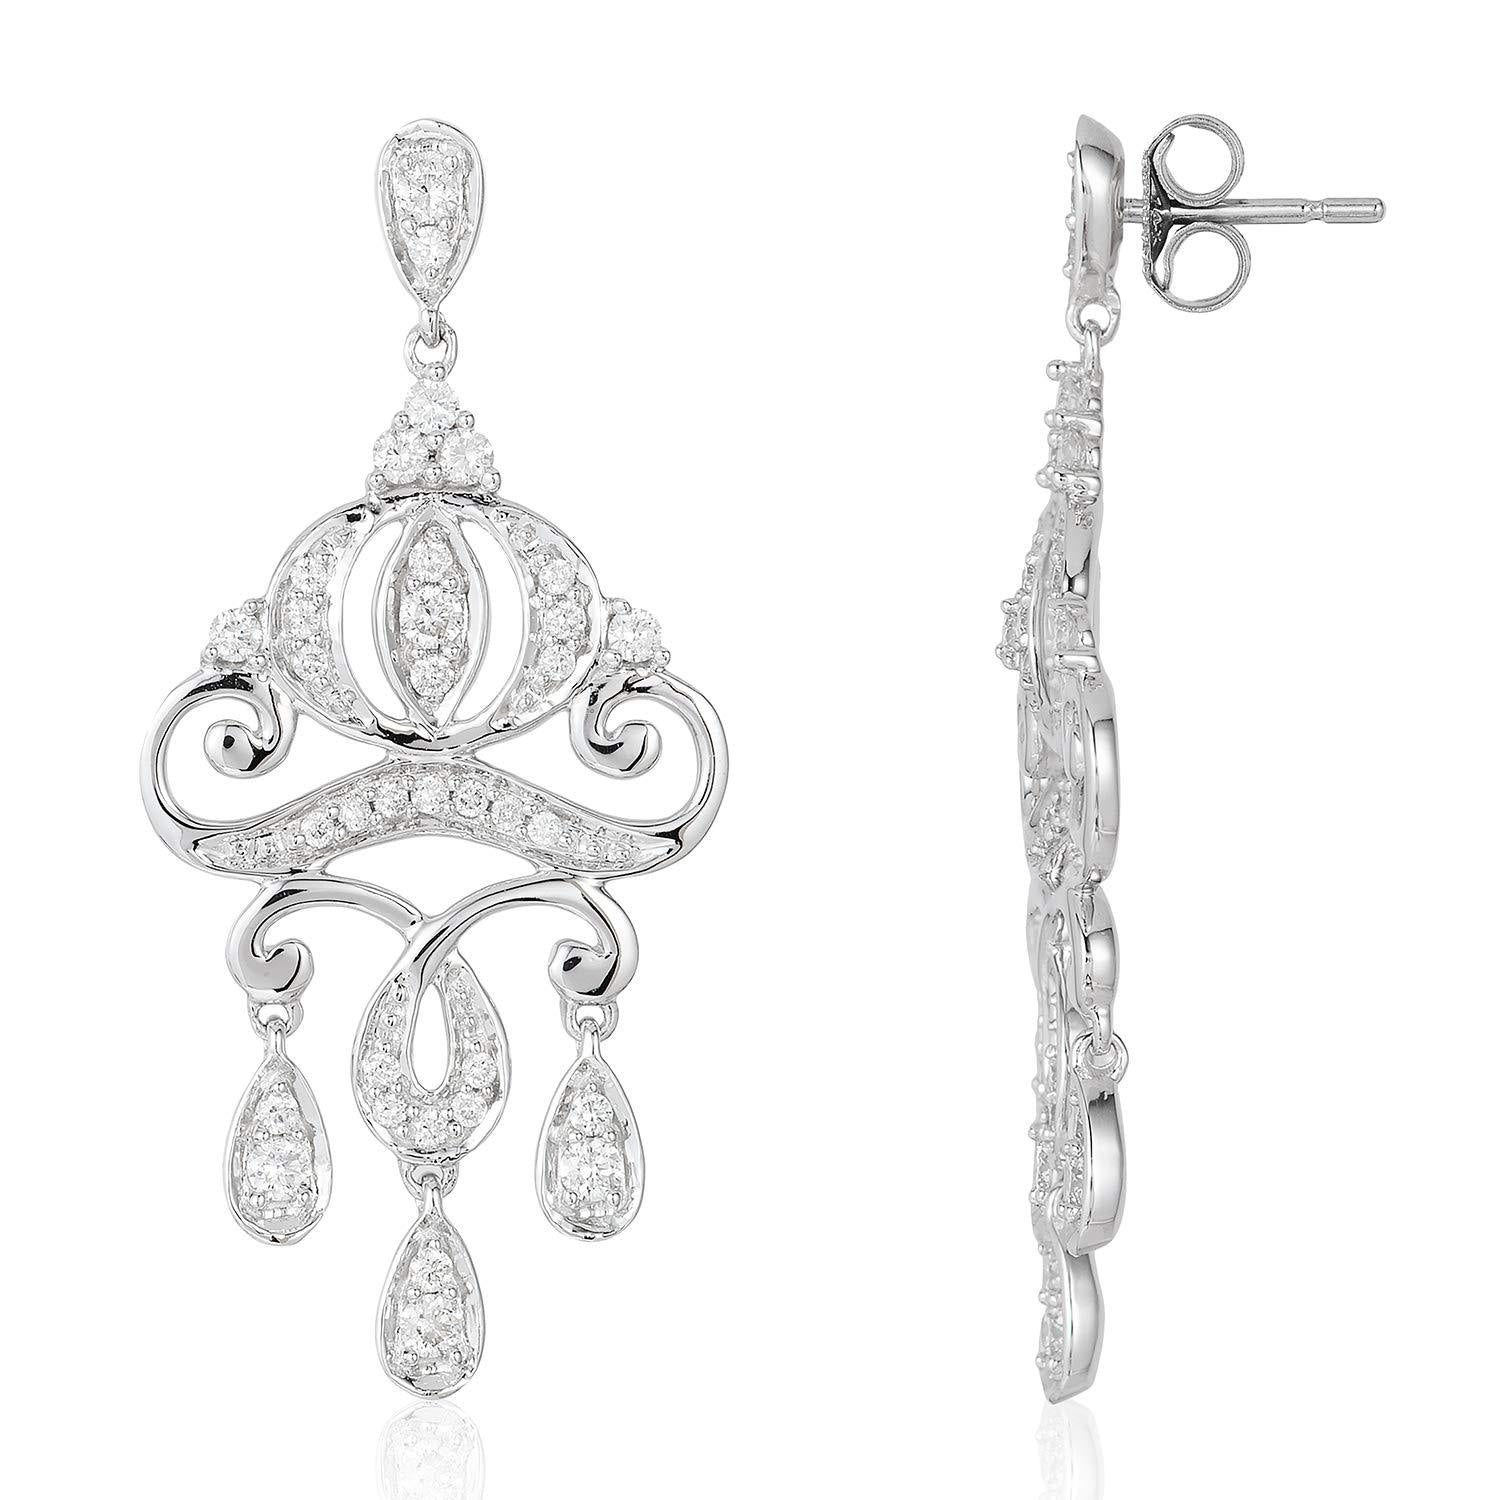 enchanted_disney-cinderella_carriage_earrings-14k_white_gold_1/2CTTW_1